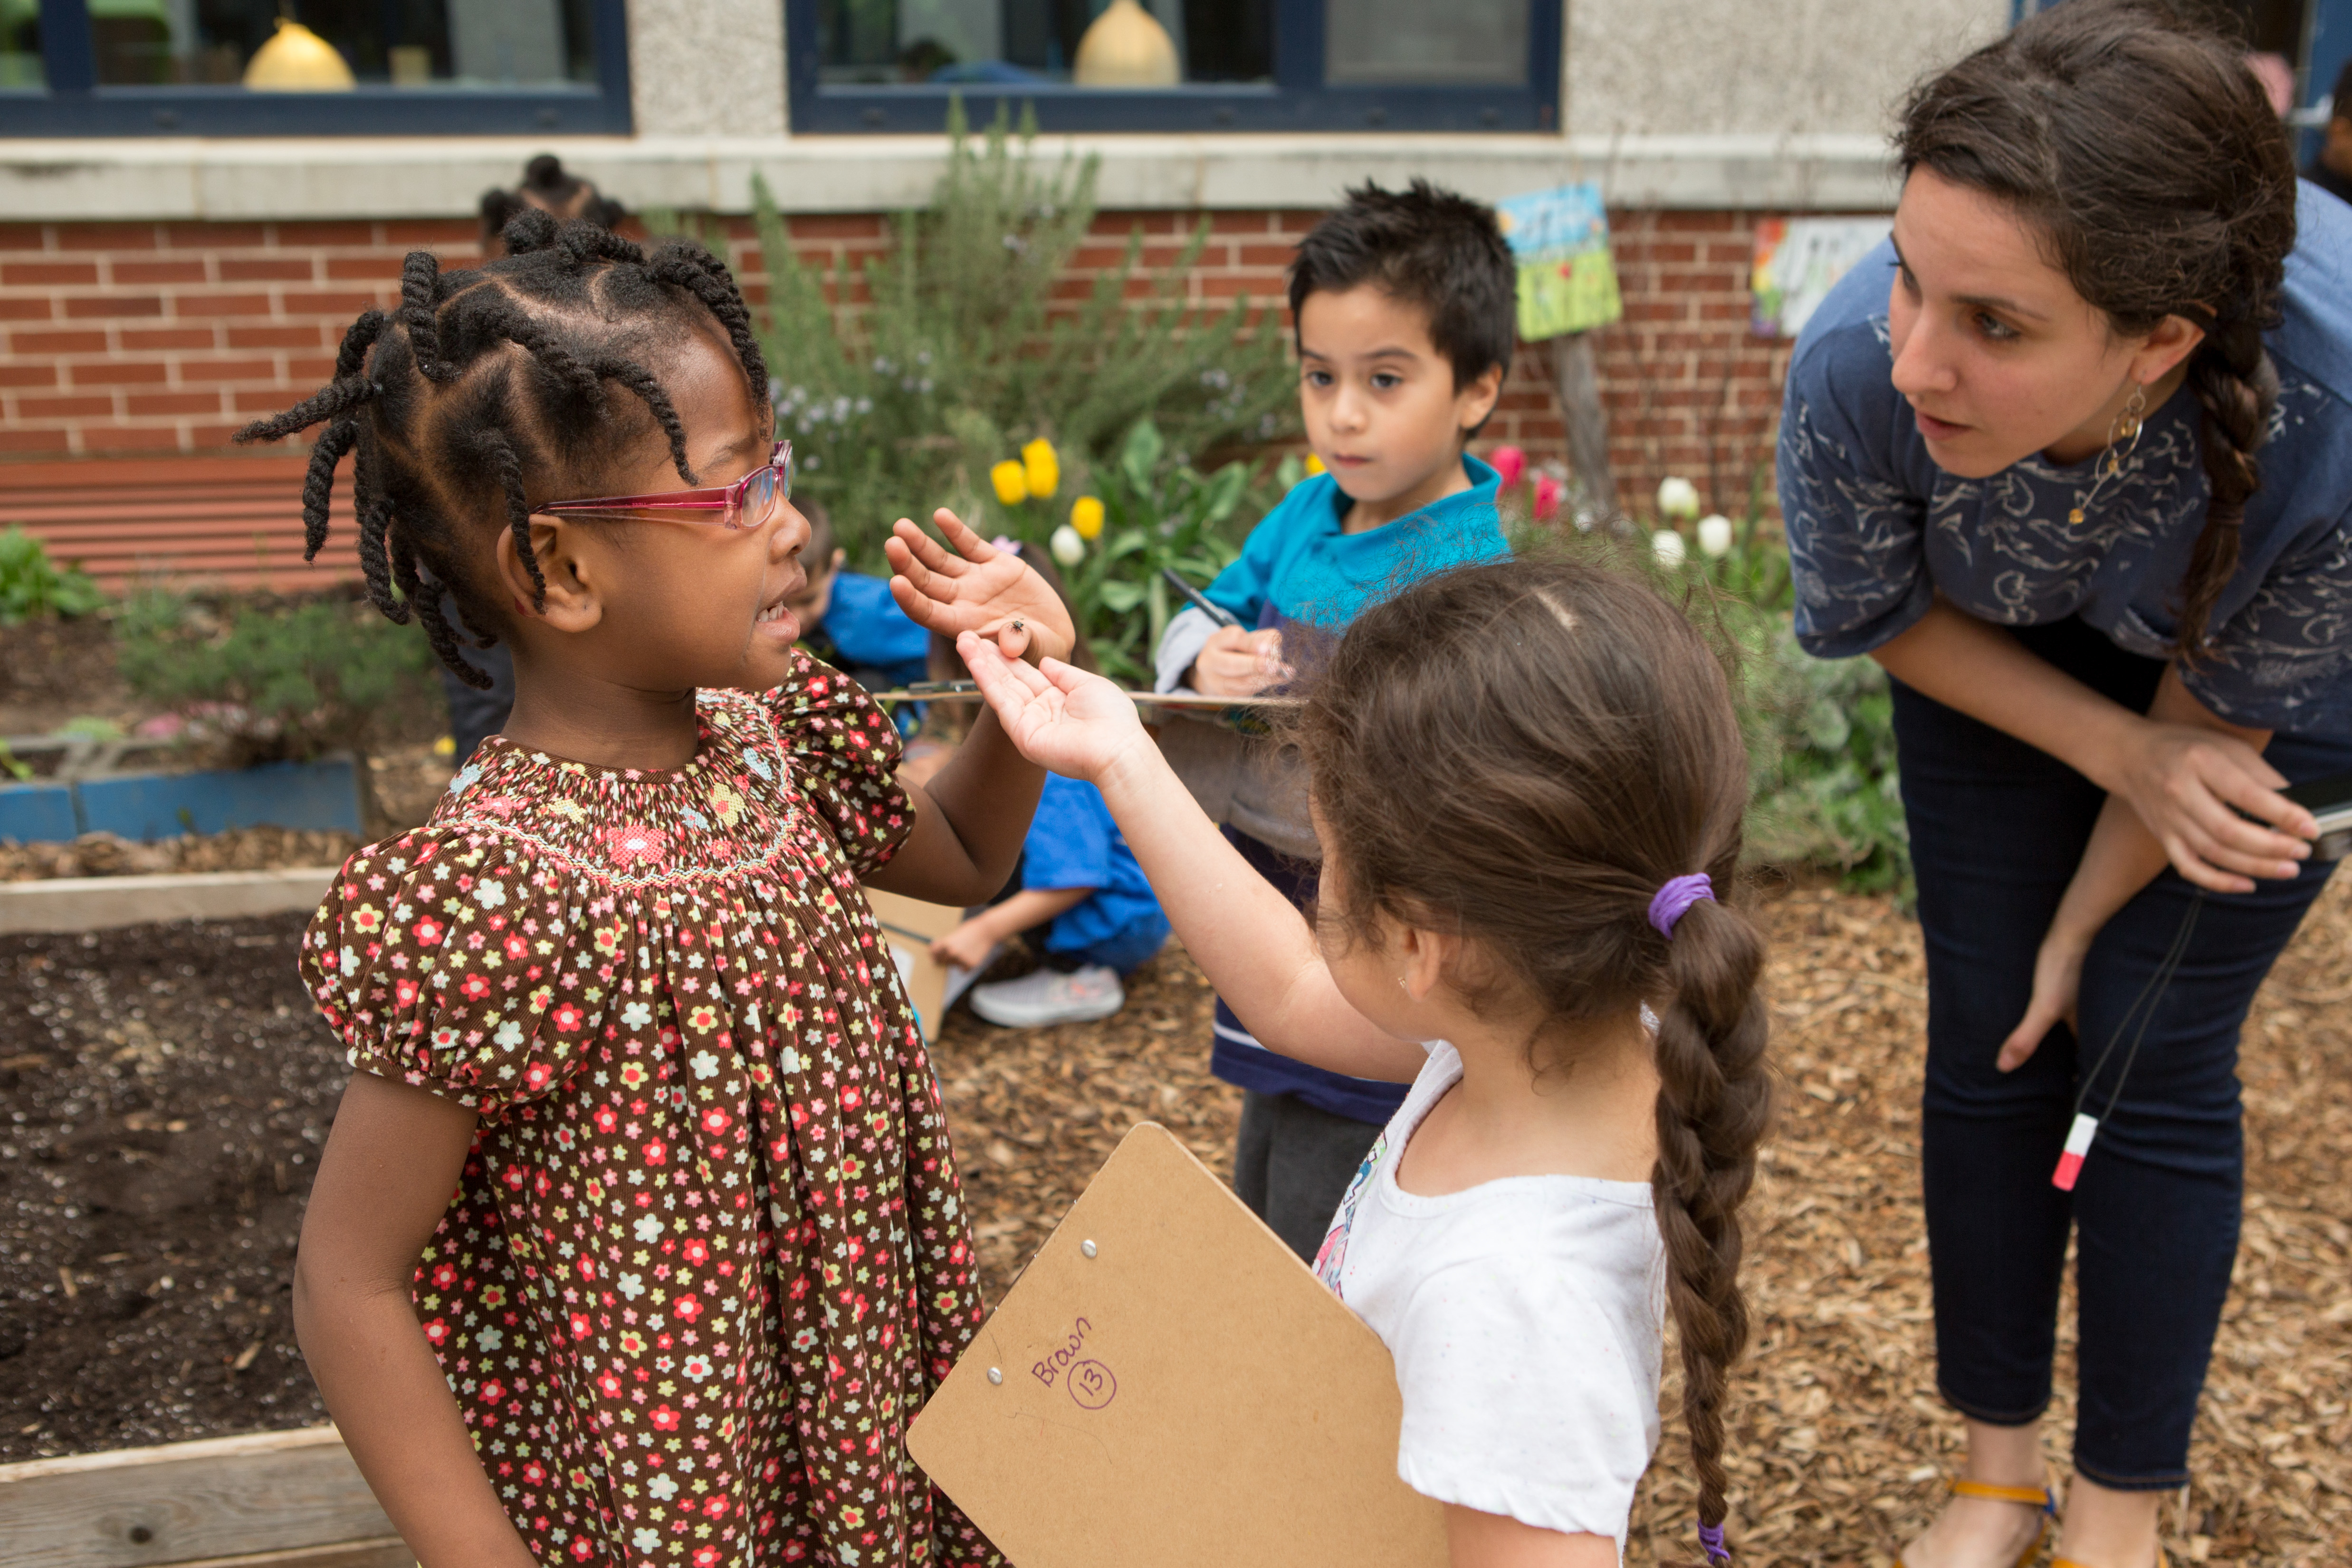 A preschool girl stands outside holding an insect on her finger while a classmate and a teacher look at it.